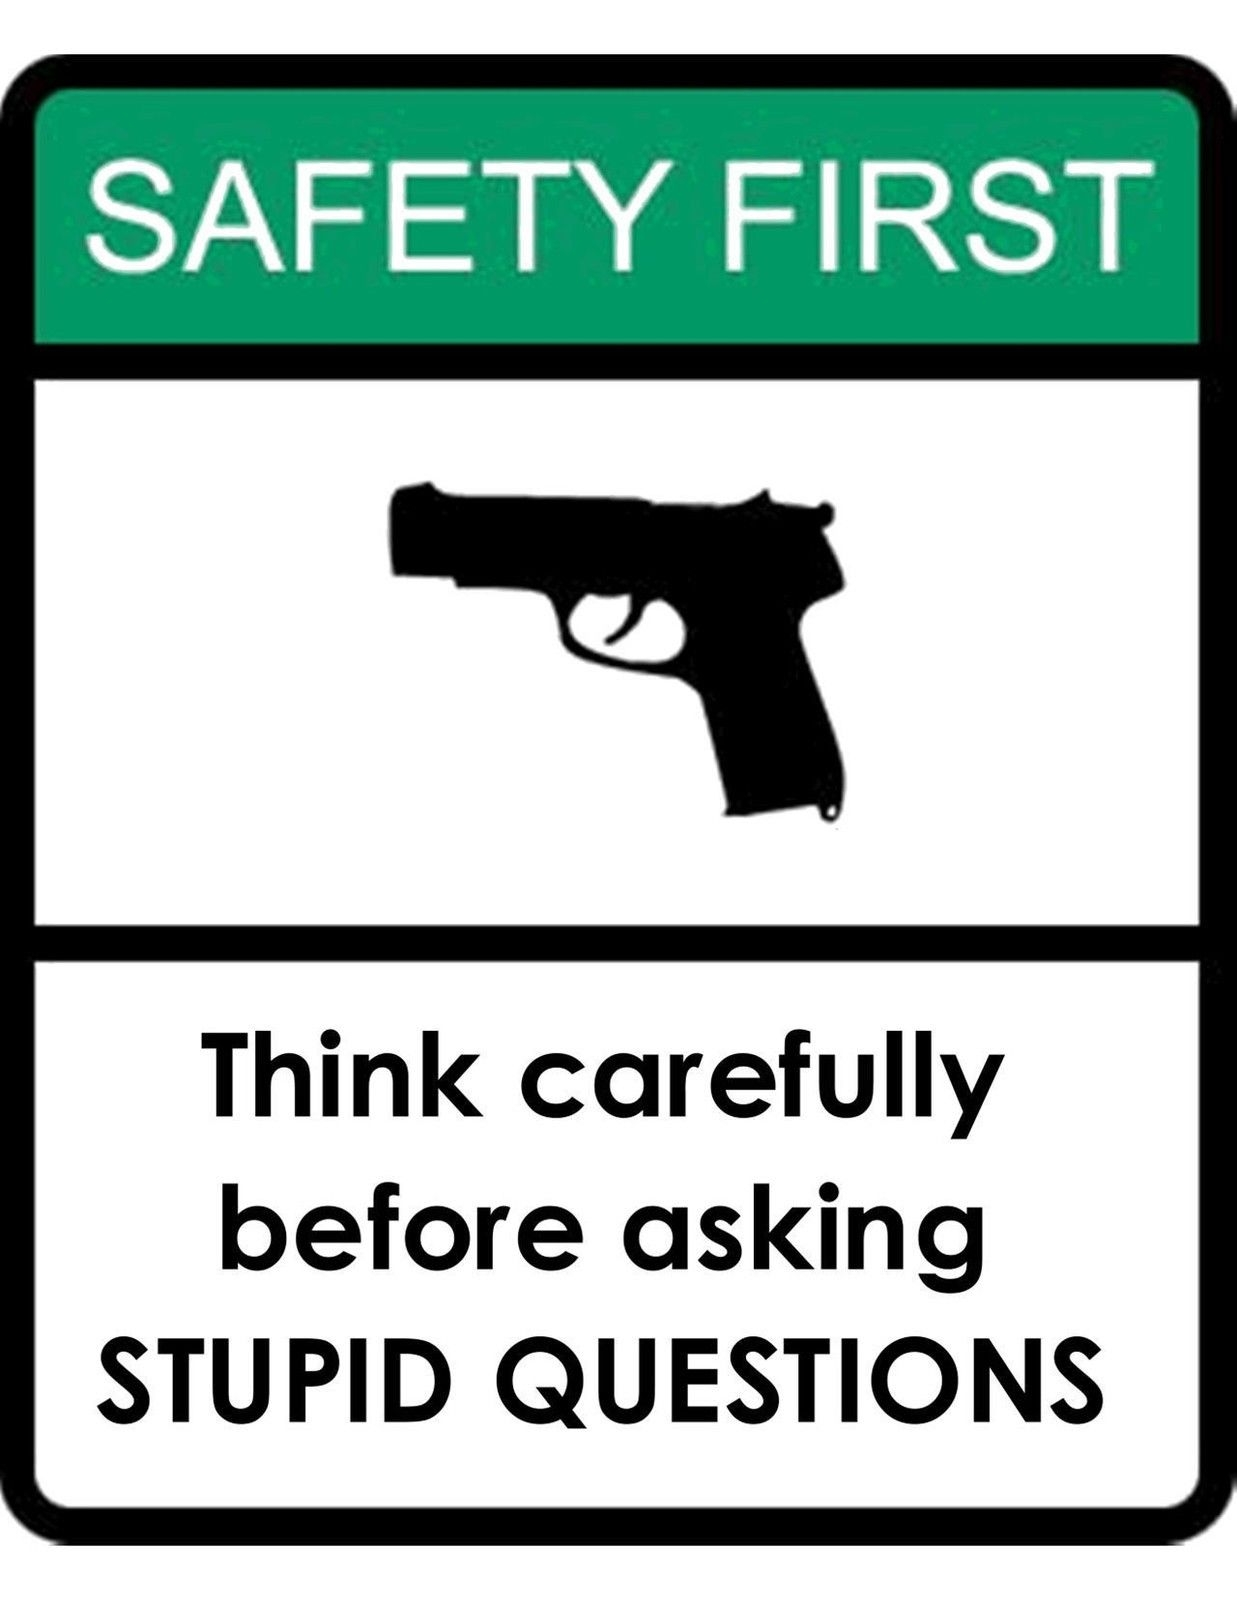 Flowers And Butterflies Wall Stickers Funny Warning Safety First Think Before Asking Questions